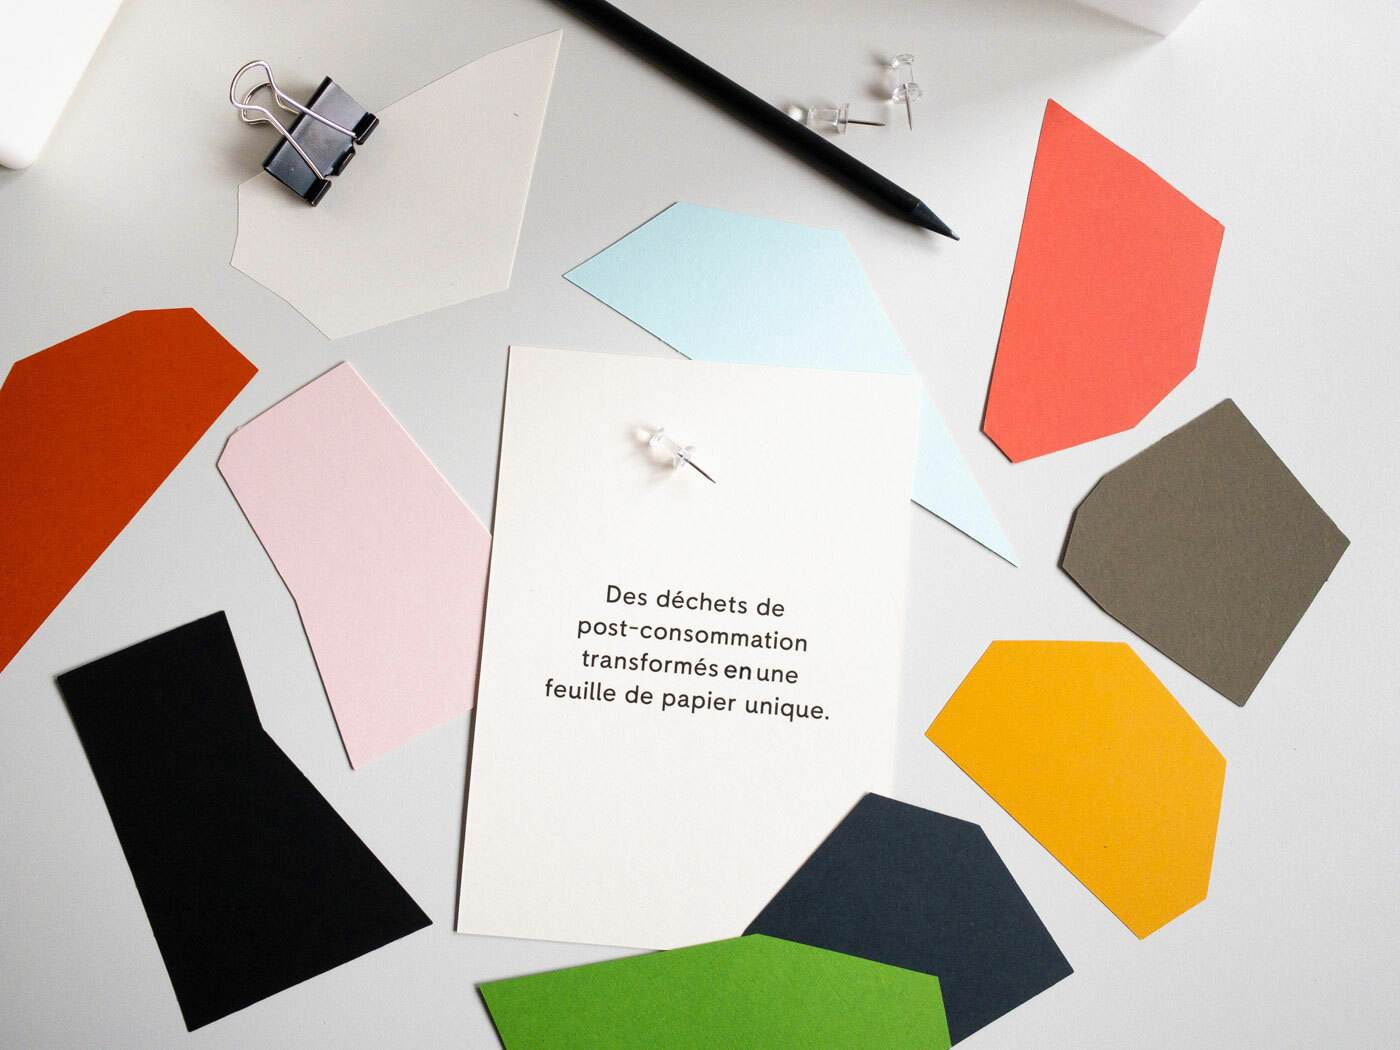 print-responsable-papier-cup-cycled-gobelets